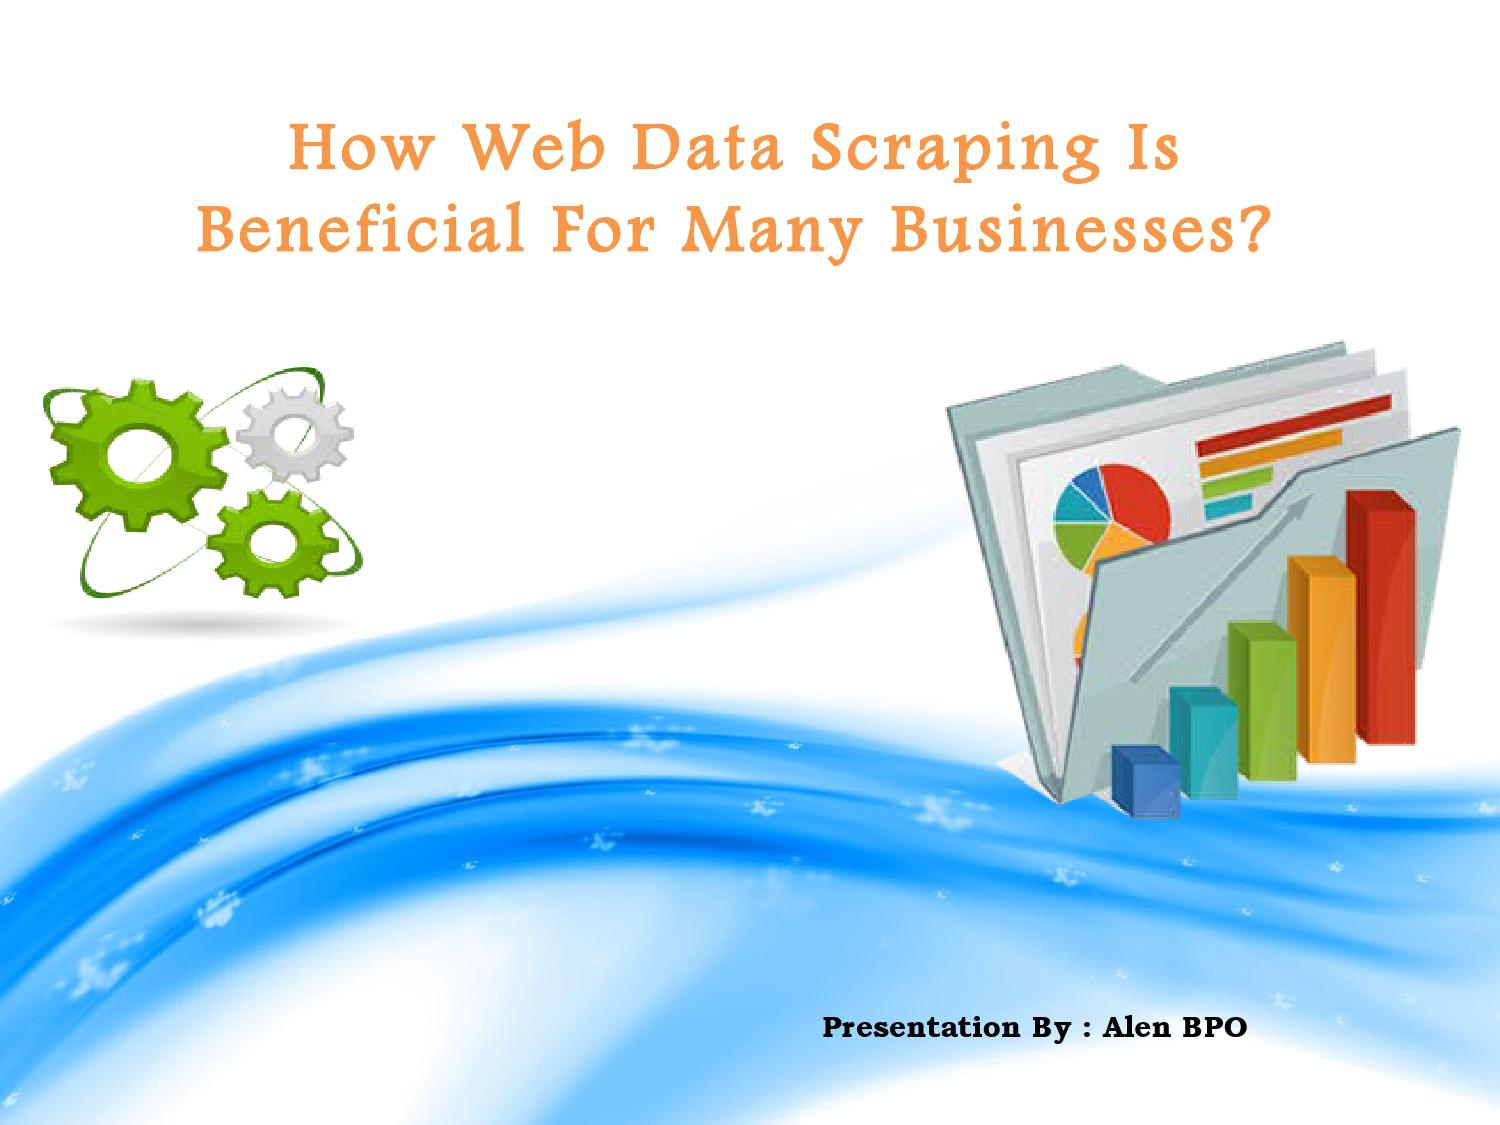 How Web Data Scraping Is Beneficial For Many Businesses? by